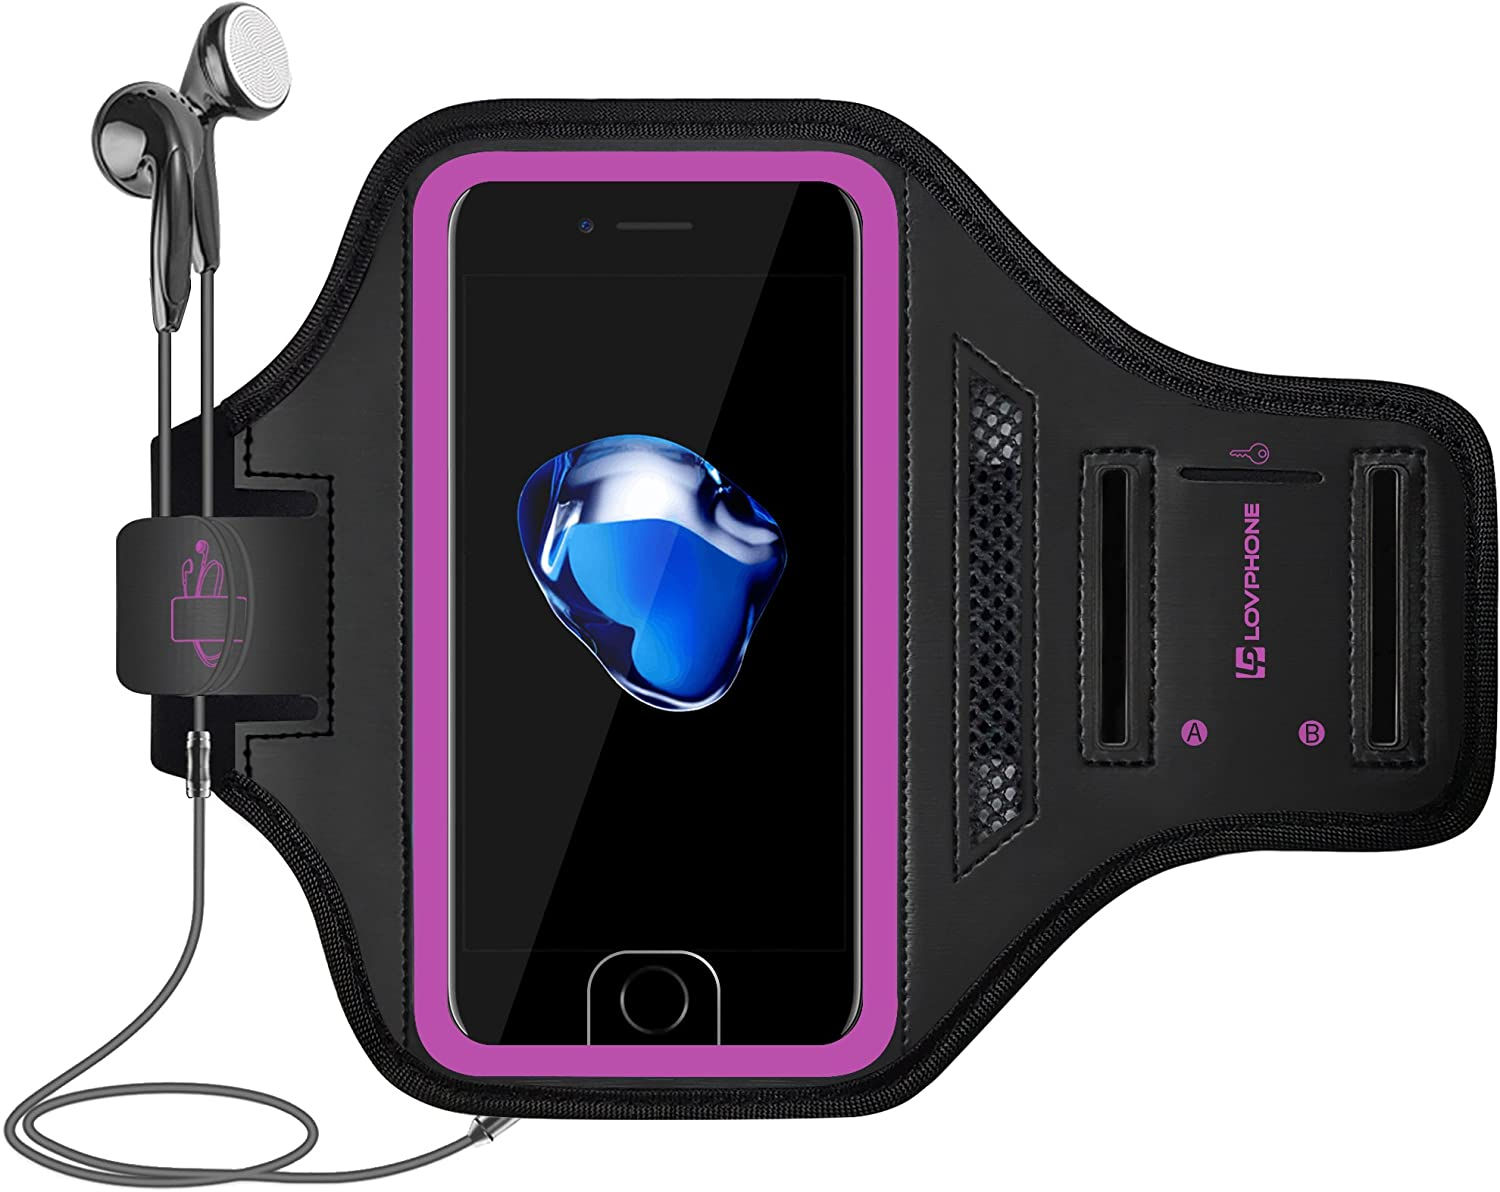 iPhone 7/8 Plus Armband - LOVPHONE Sport Running Exercise Gym Sportband Case for Apple iPhone 8 Plus/iPhone 7 Plus/iPhone 6 Plus/6s Plus, with Key Holder & Card Slot, Water Resistant (Rosy)